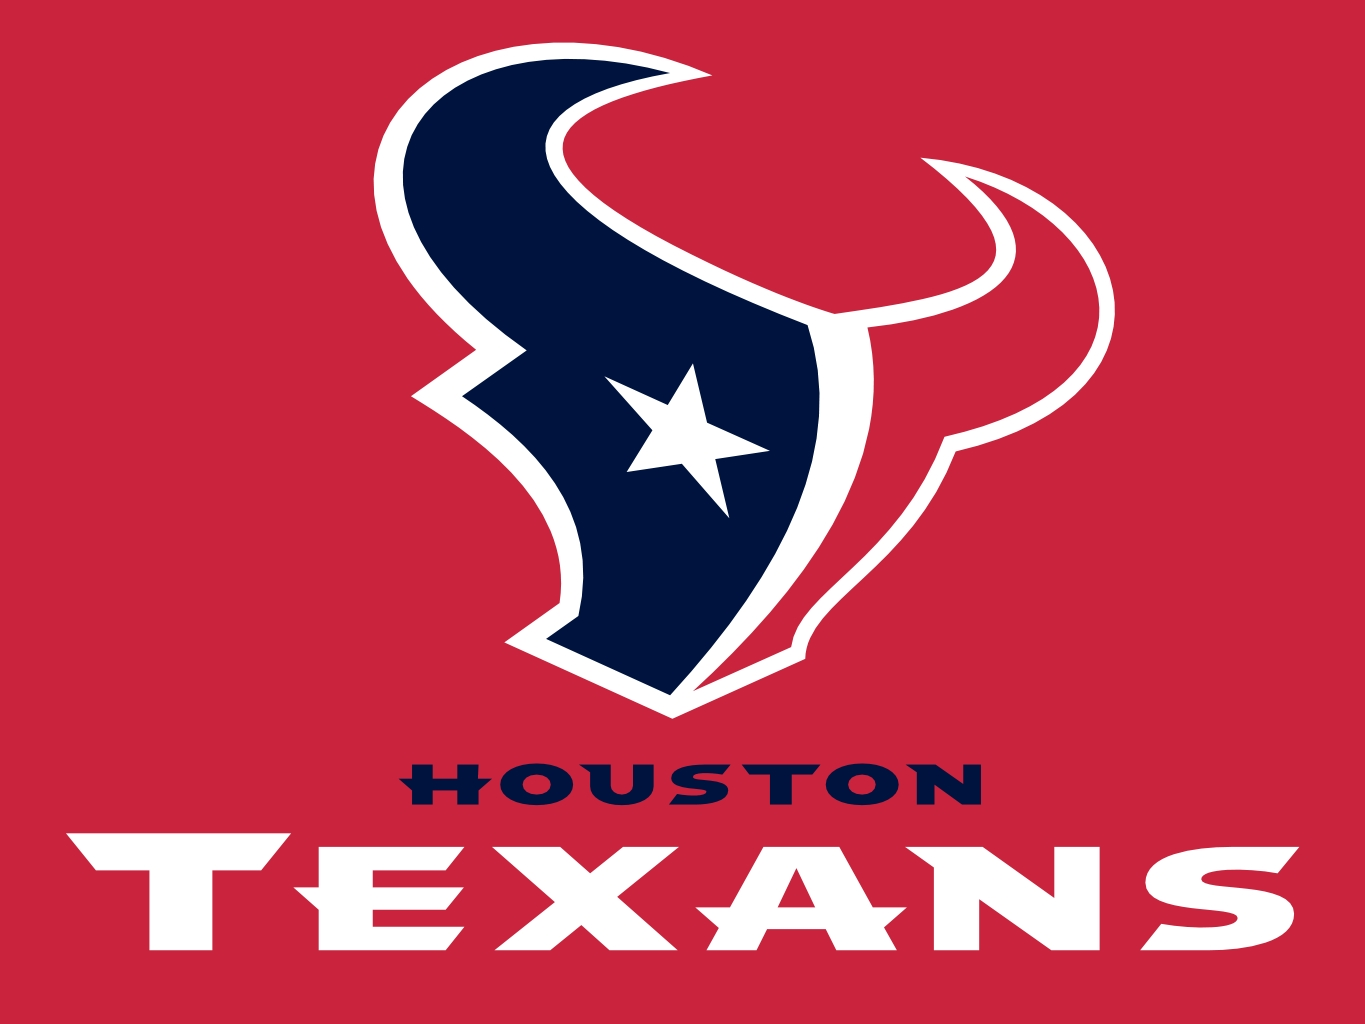 Houston texans logo template gallery template design ideas for Houston texans logo template